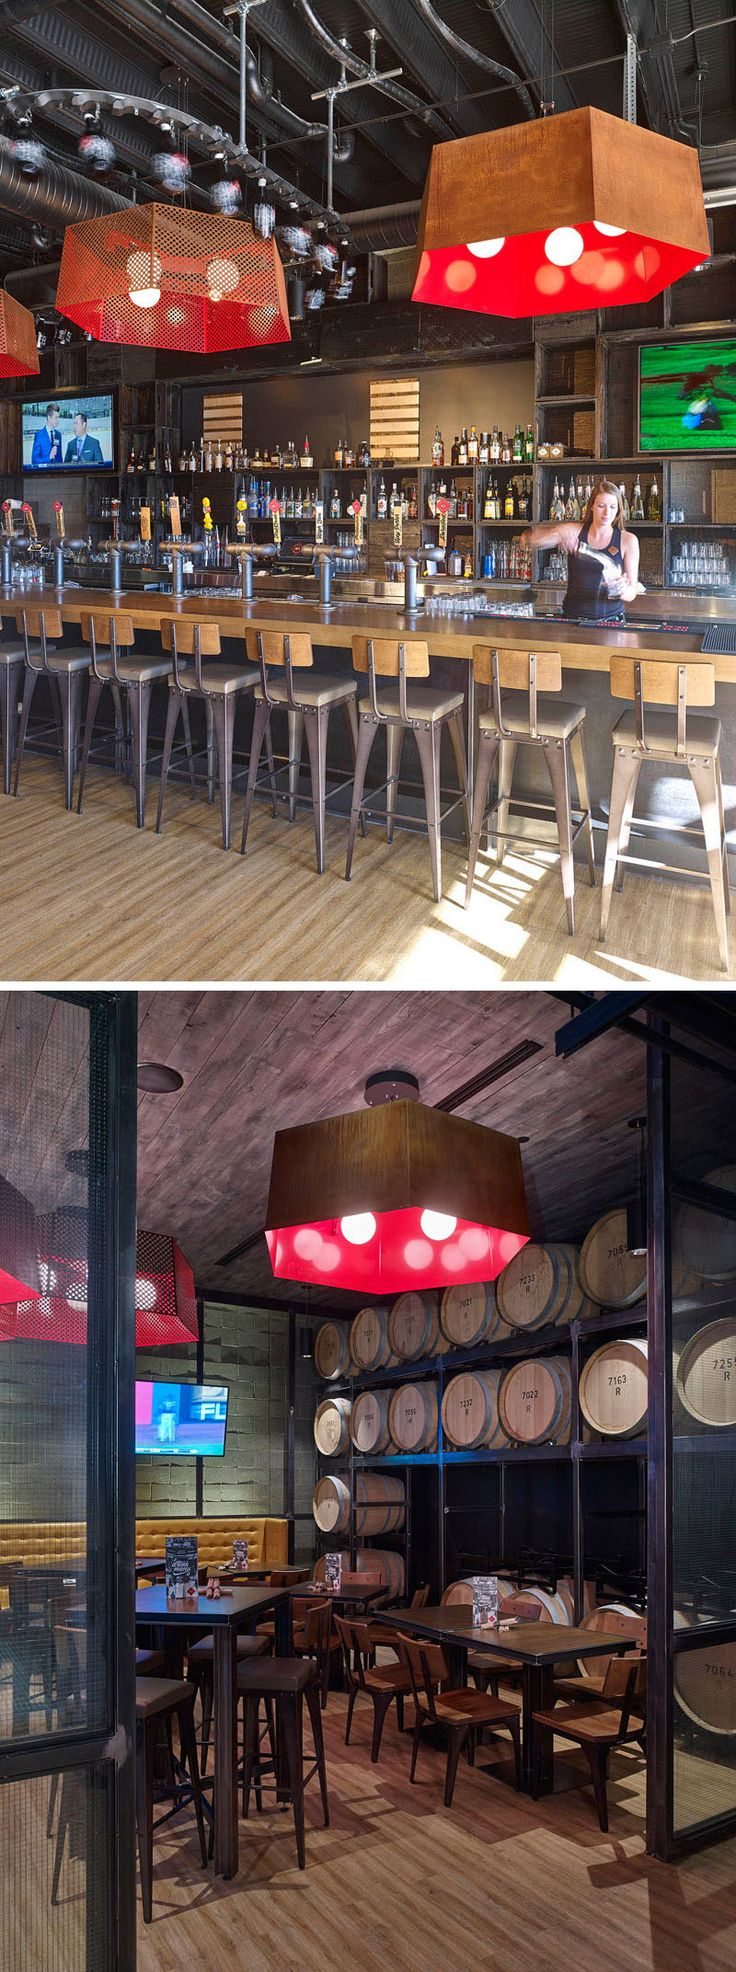 This industrial brew pub features a casual dining area as well as a large bar area both with large copper lights above them. The use of pipes in place of more traditional looking beer taps, together with wooden elements create an industrial look throughout the space.